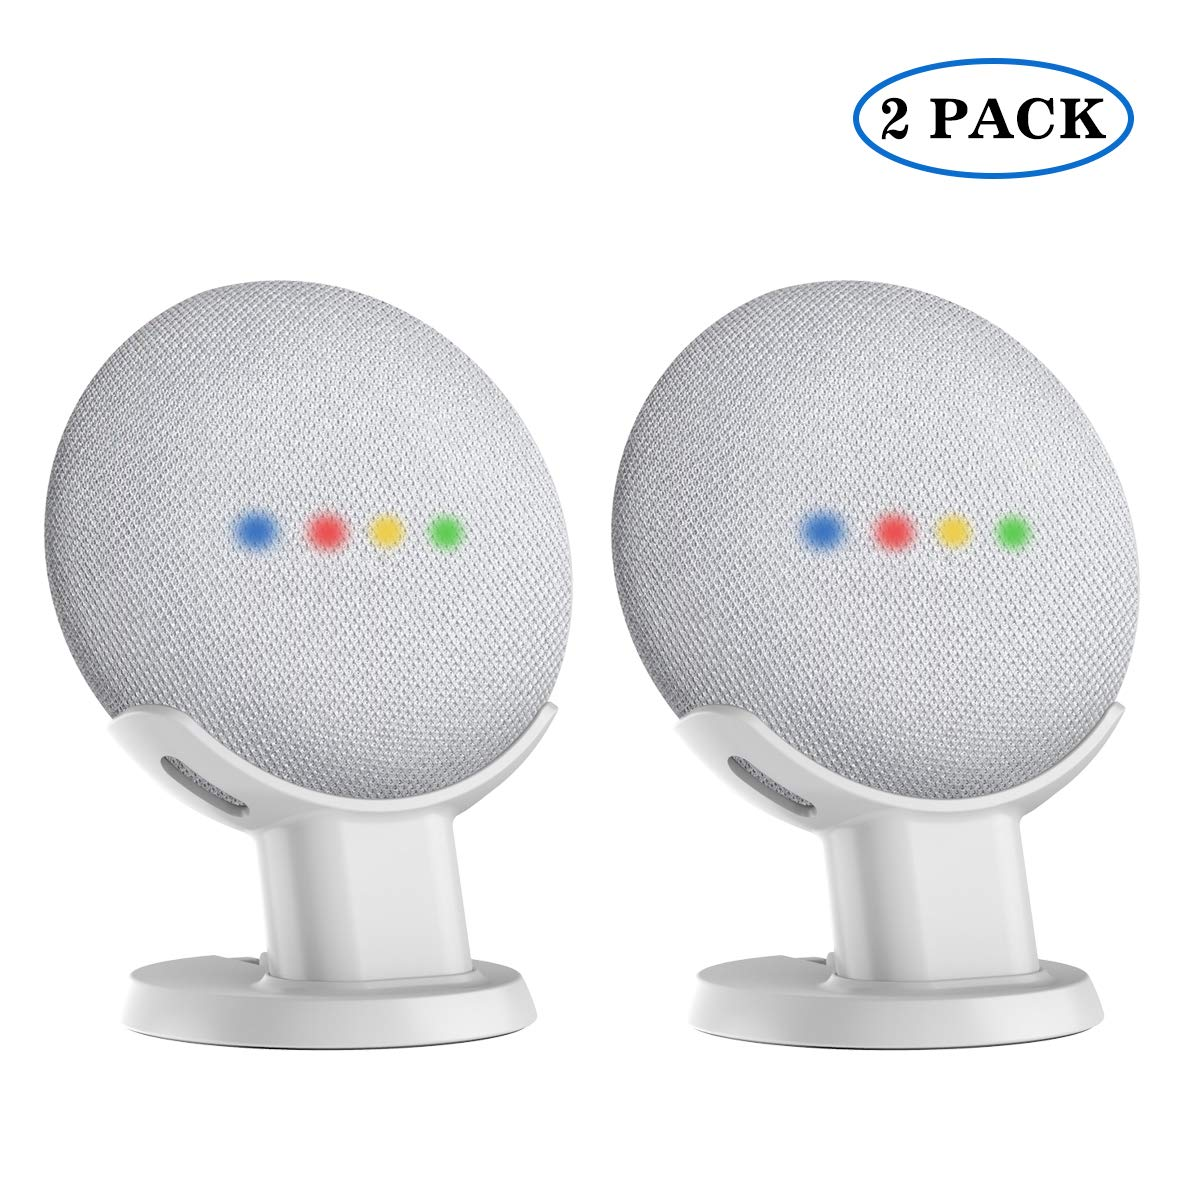 SPORTLINK Pedestal for Nest Mini (2nd Gen) and Google Home Mini Improves Sound Visibility and Appearance - A Must Have Mount Holder Stand for Nest Mini (2nd Gen)/ Google Mini (white-2pack)